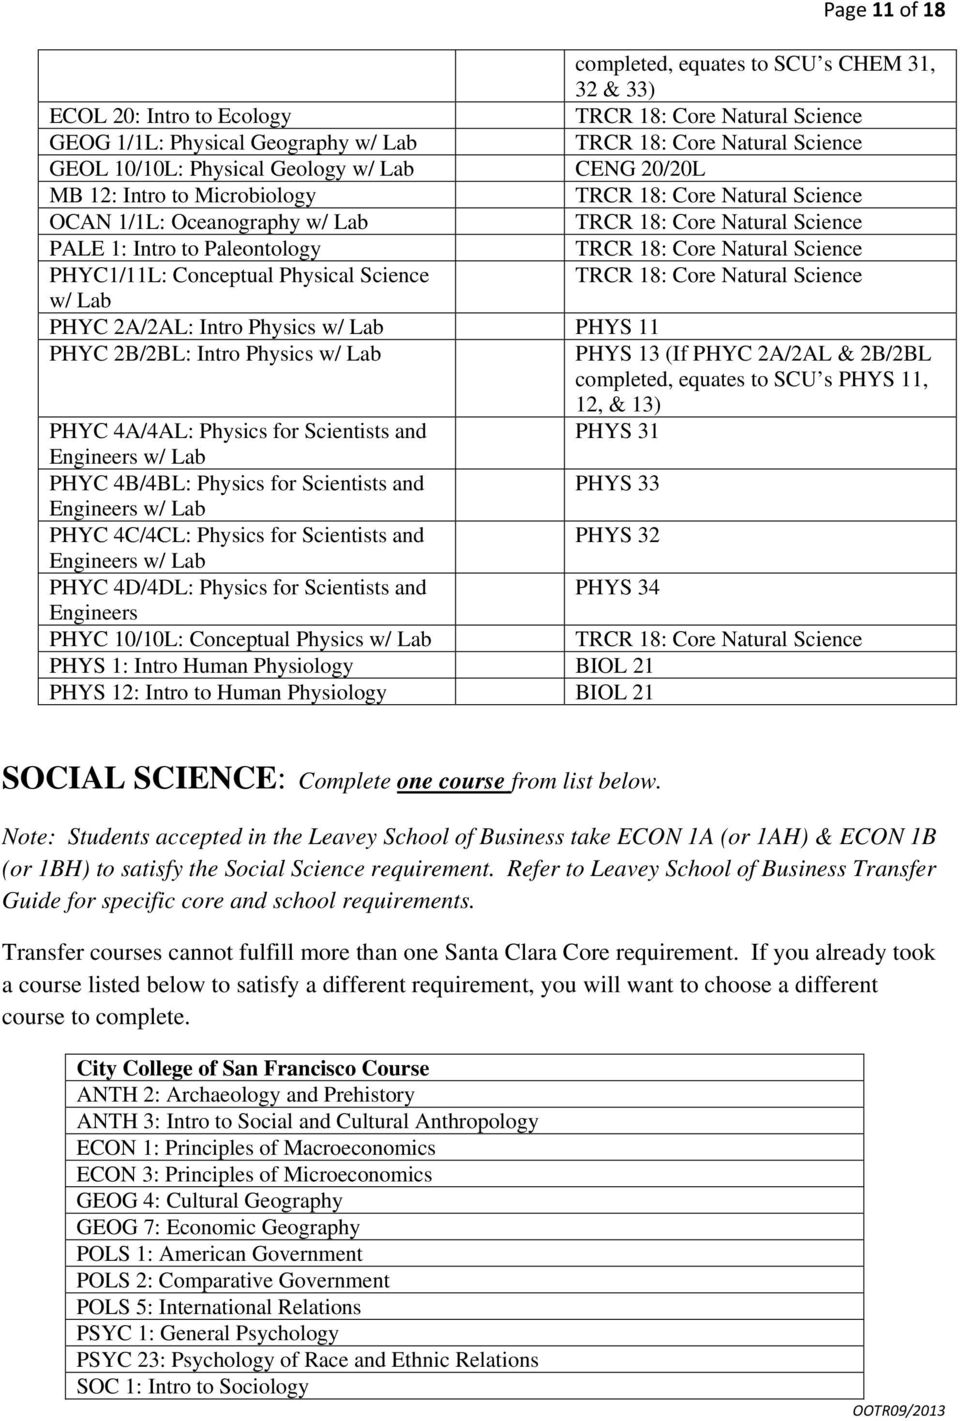 school of engineering city college of san francisco transfer guide pdf rh docplayer net